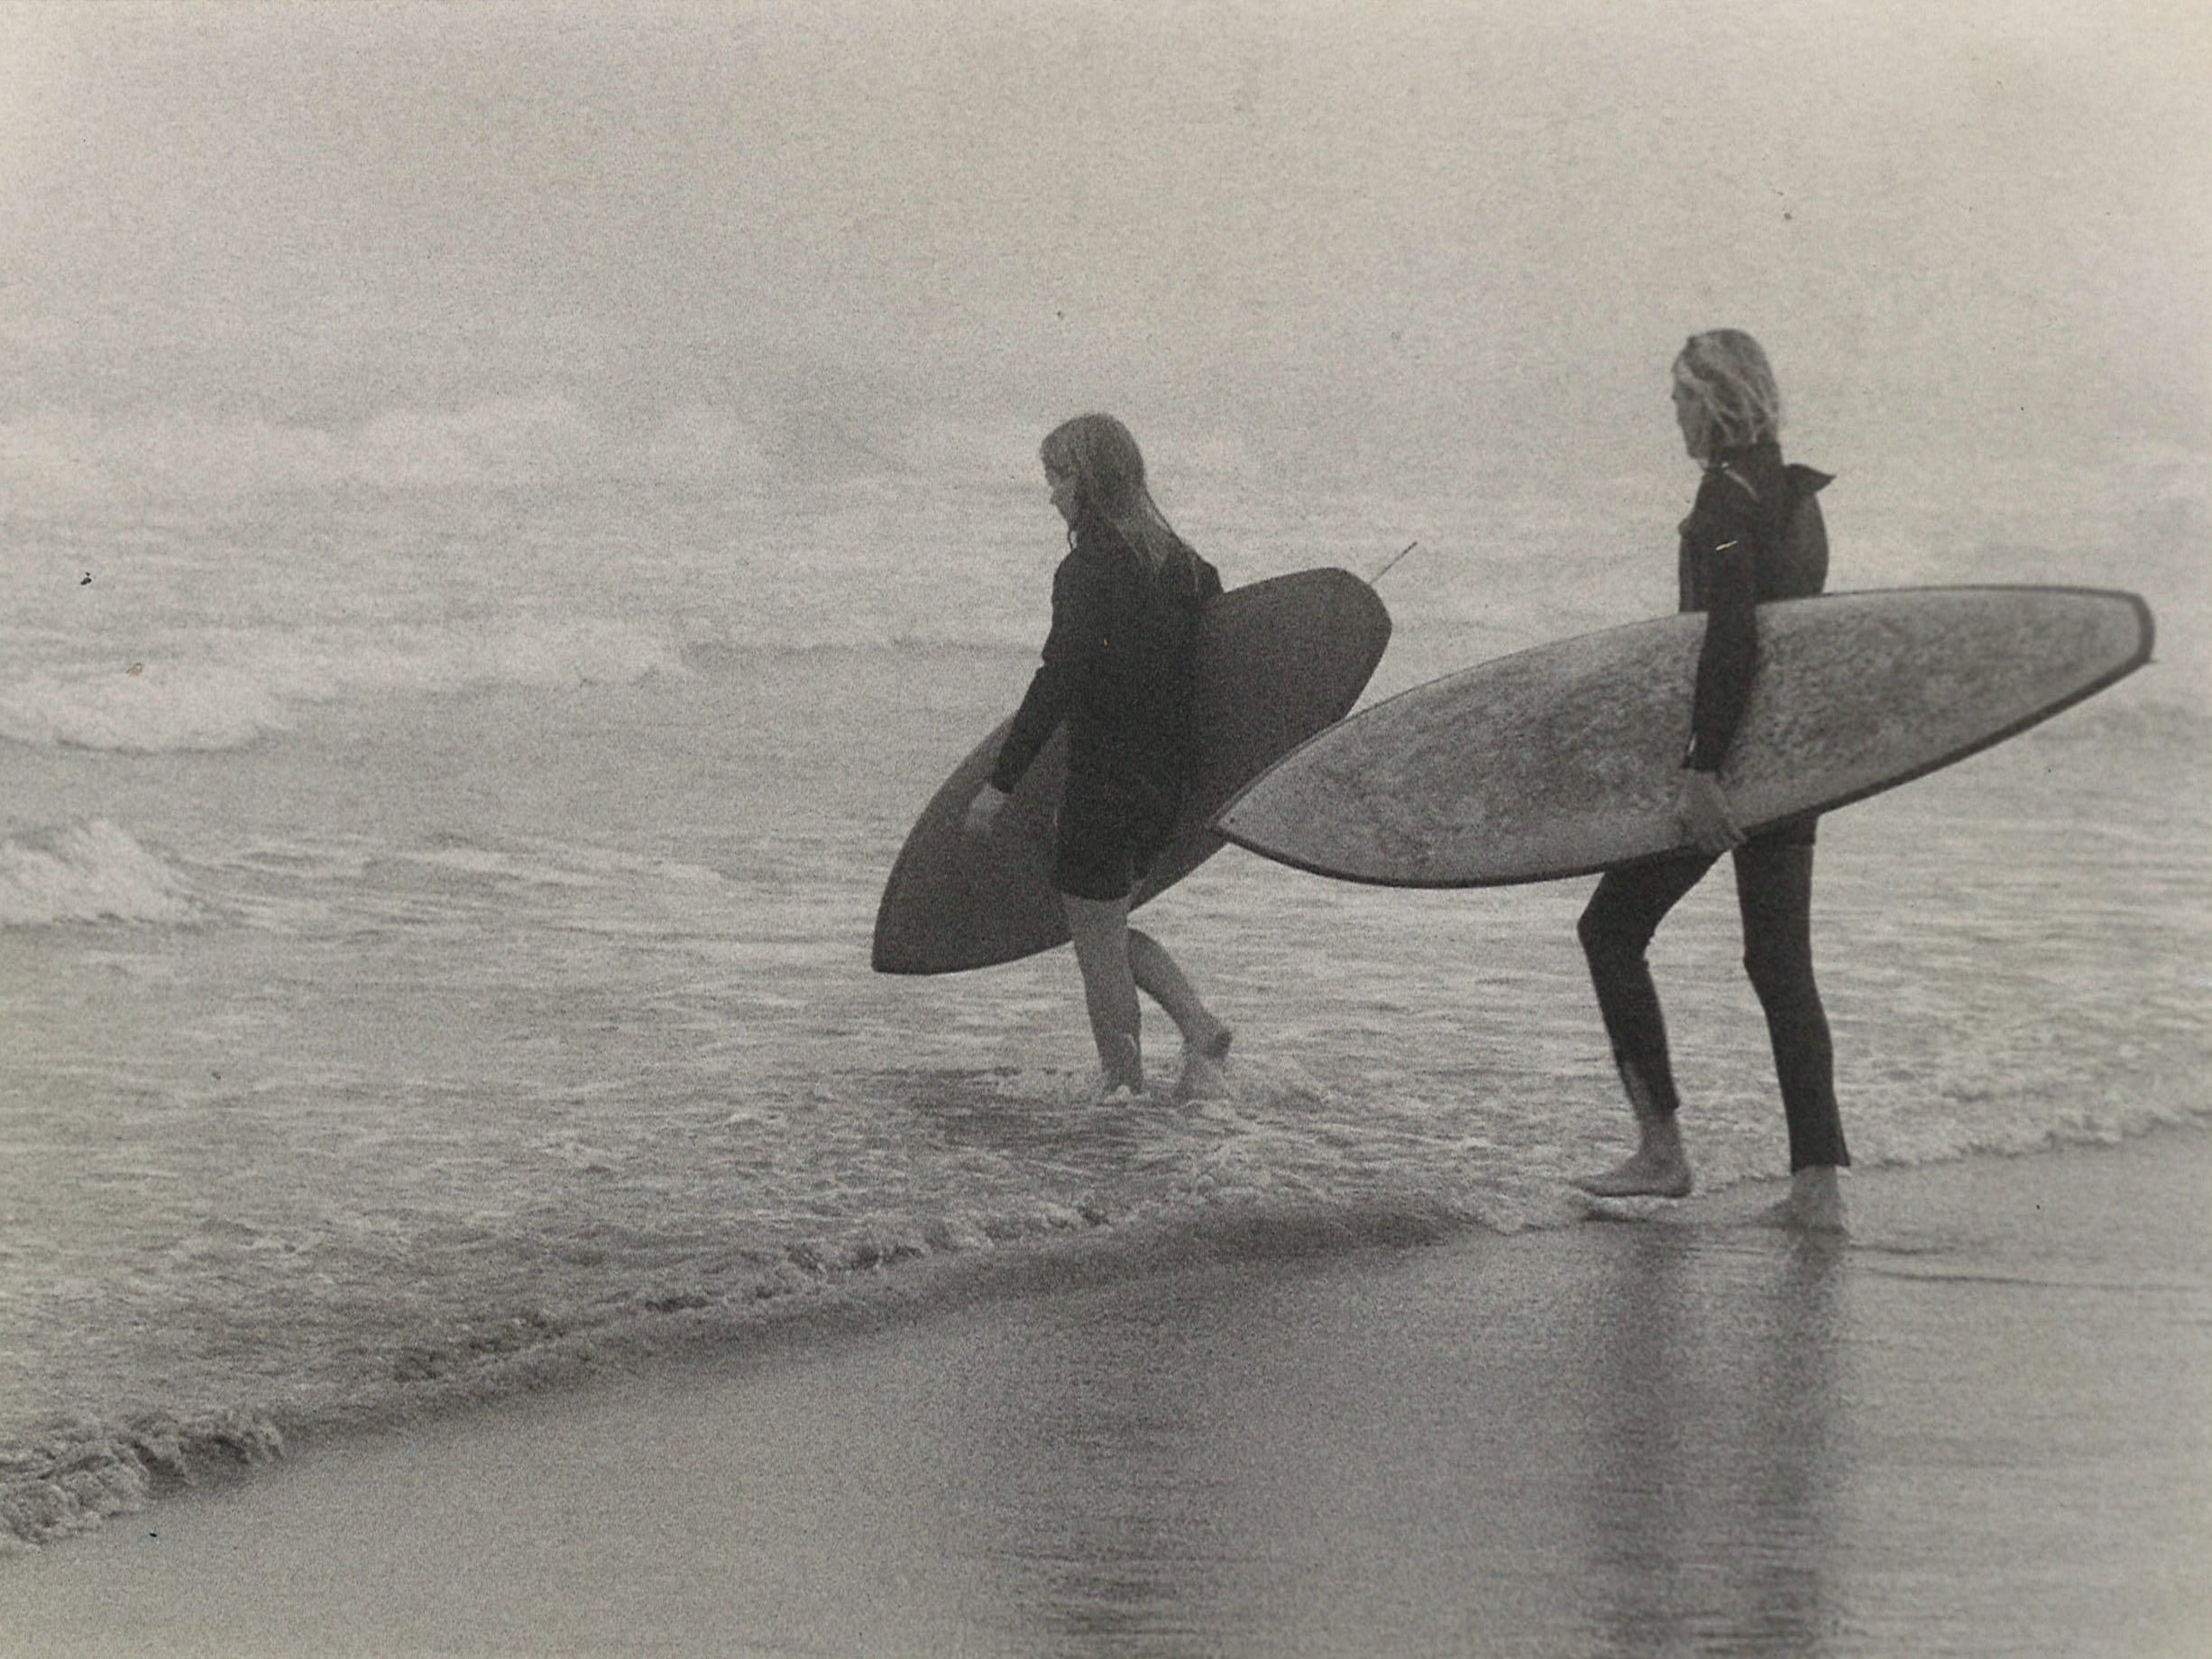 Craig Adams (left) and John Watson, both 17, venture into the surf near Cole Park on Jan. 7, 1974. The fog and drizzle kept most people away.